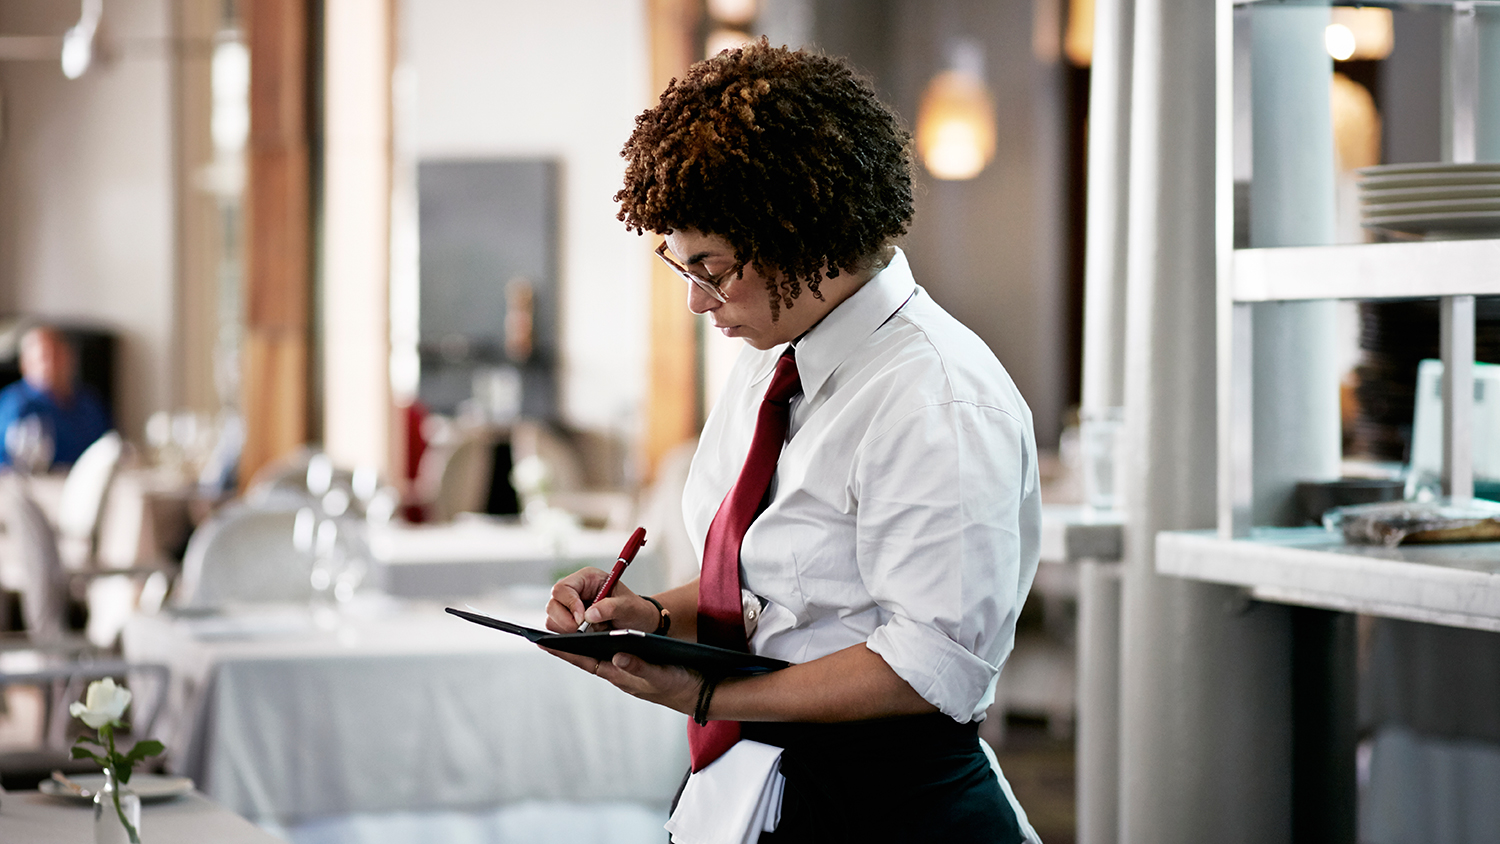 Top Restaurants Use Codes to Label Regulars, Says New Book